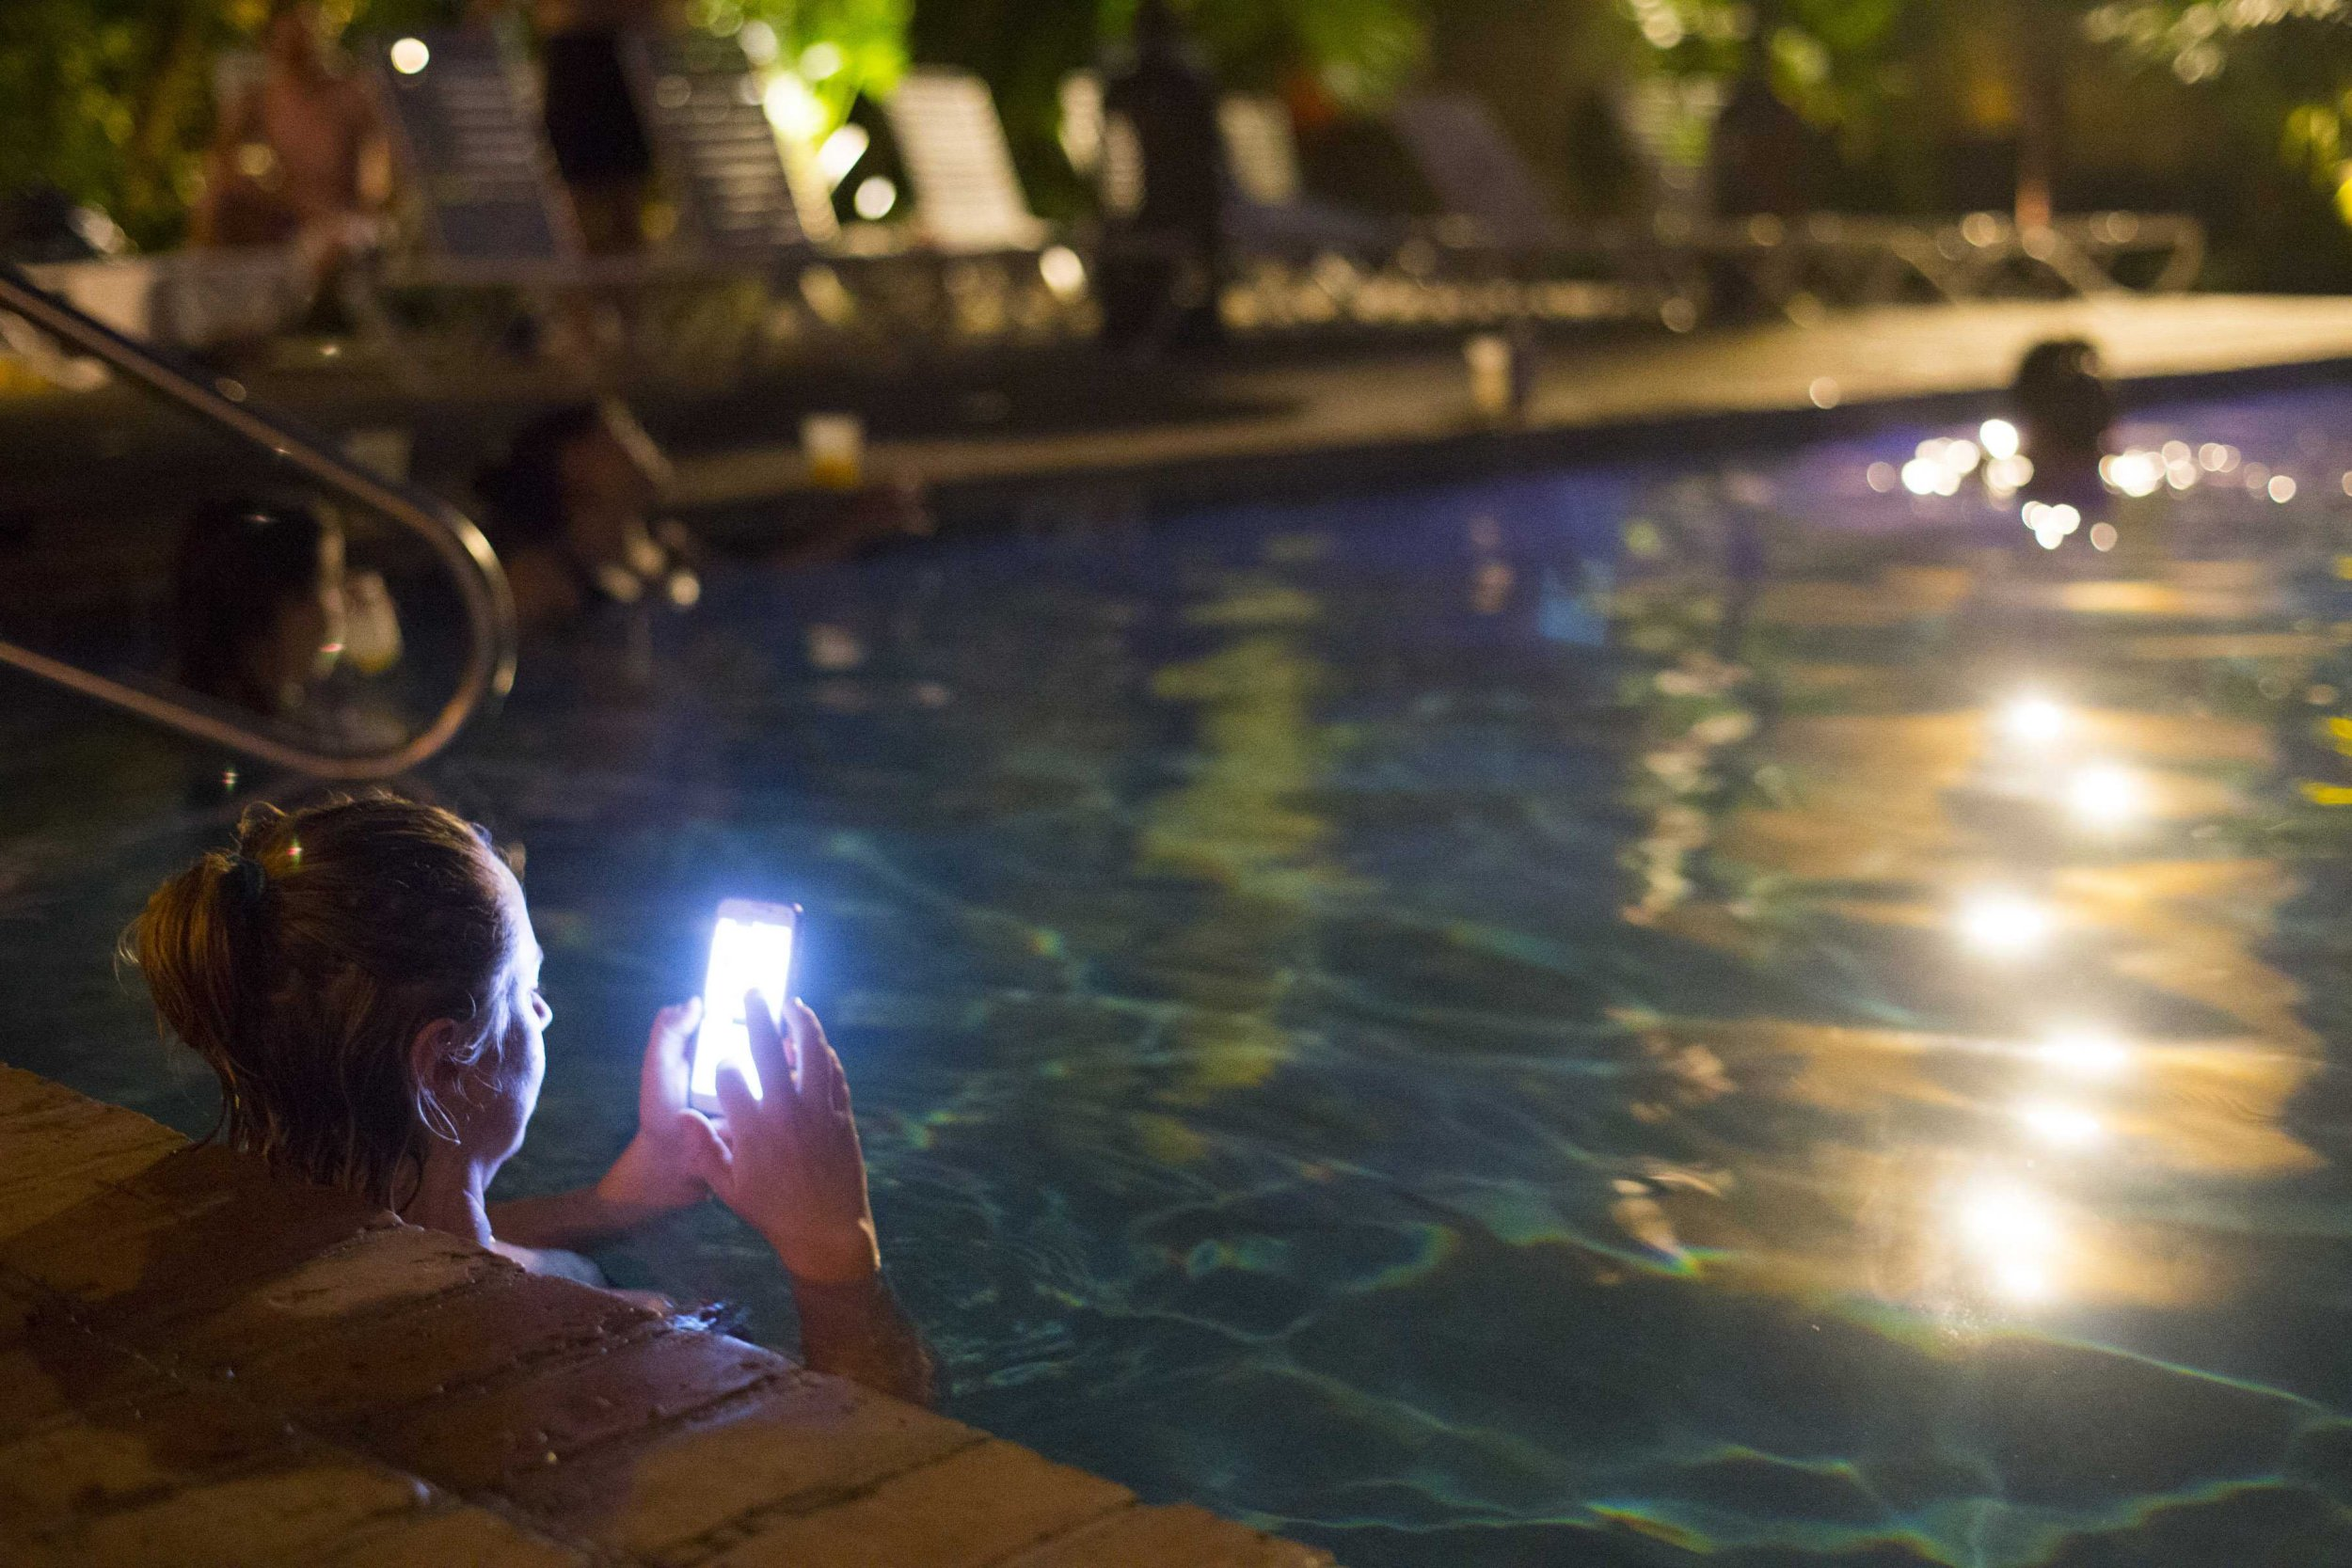 Phone at public pool